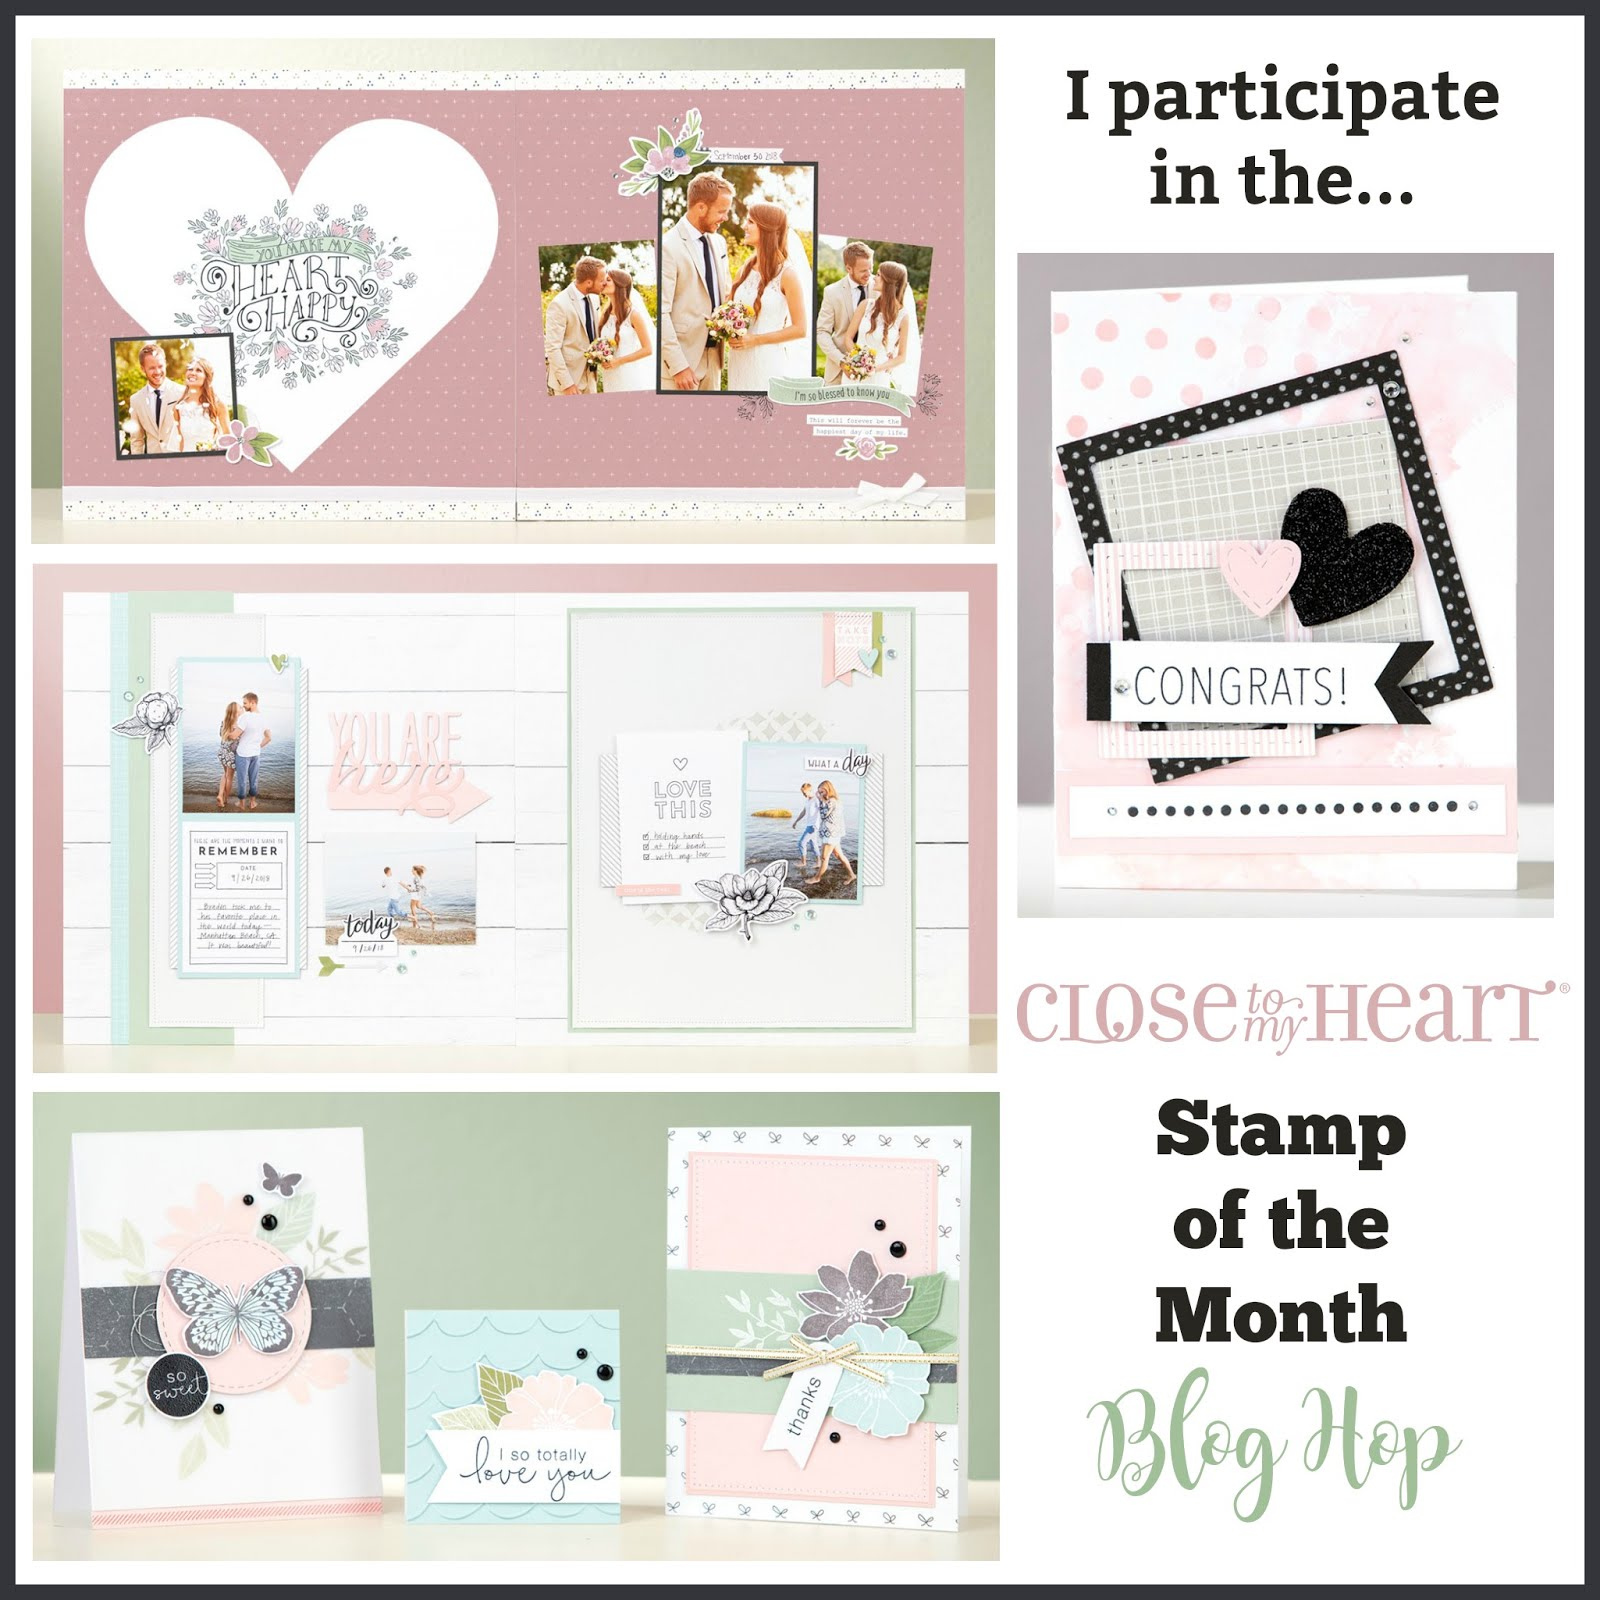 Stamp of the Month Blog Hop!